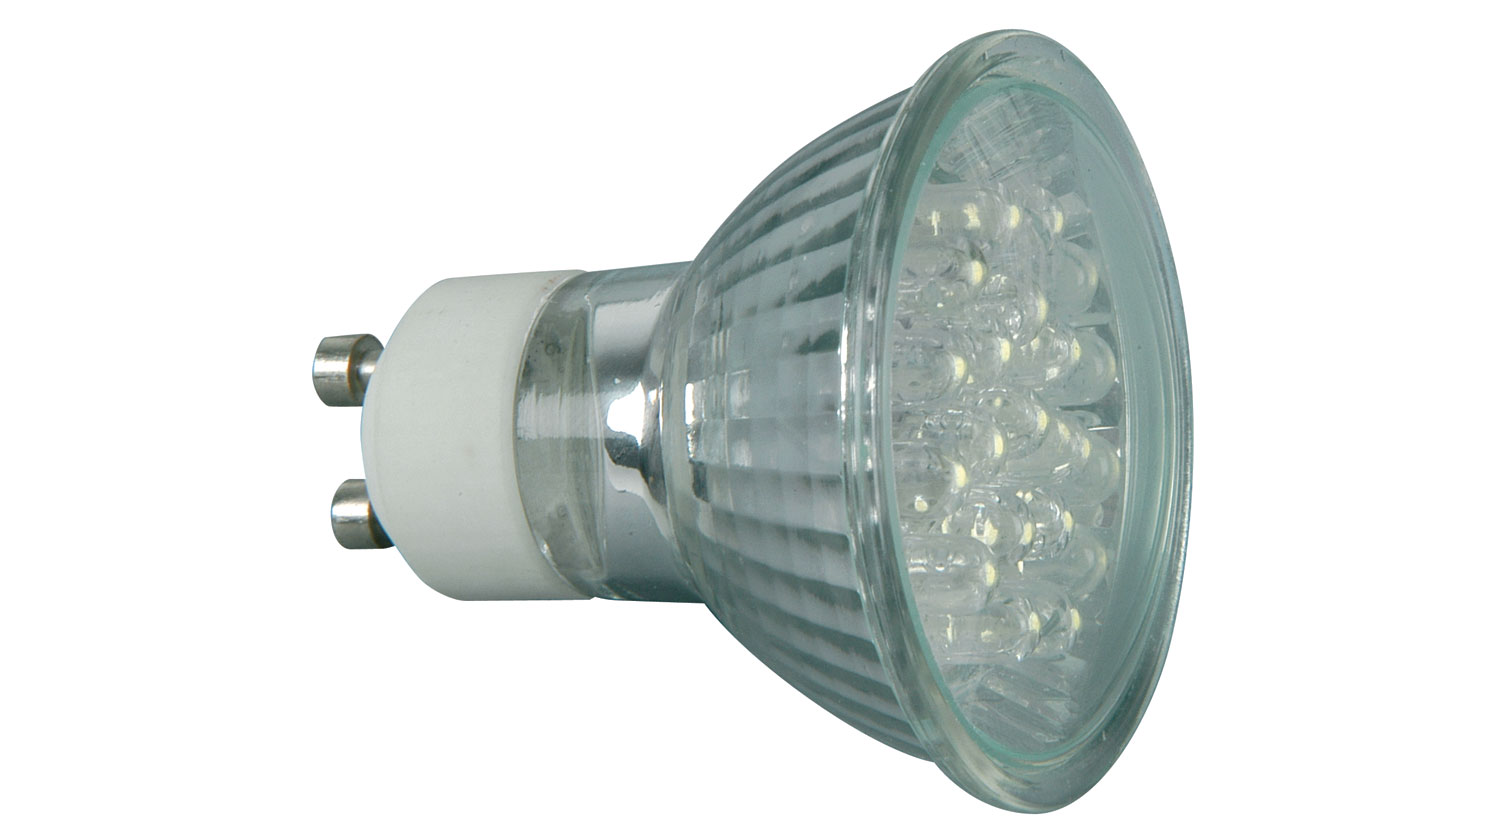 18 x LED GU10 lamp, 230Vac - Warm White